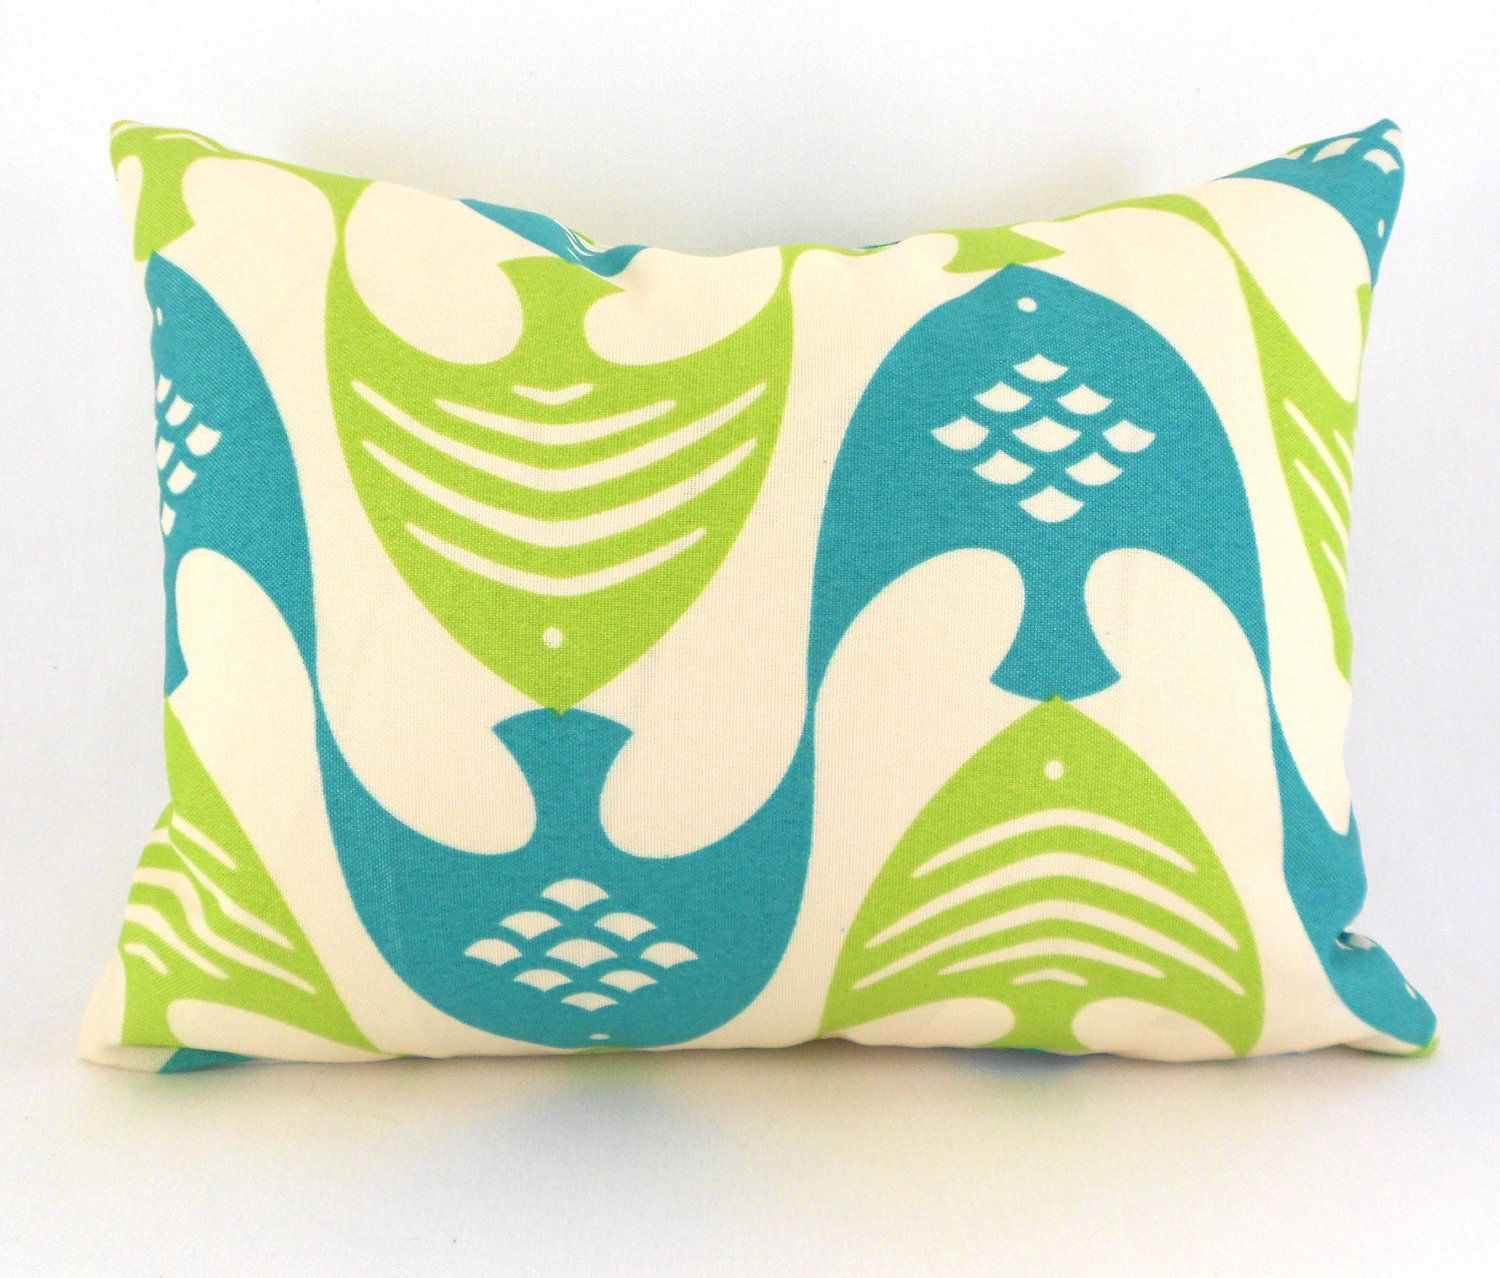 Fish Lime Teal Lumbar Back Support Indoor Outdoor Pillow Form Included. $25.00, via Etsy.